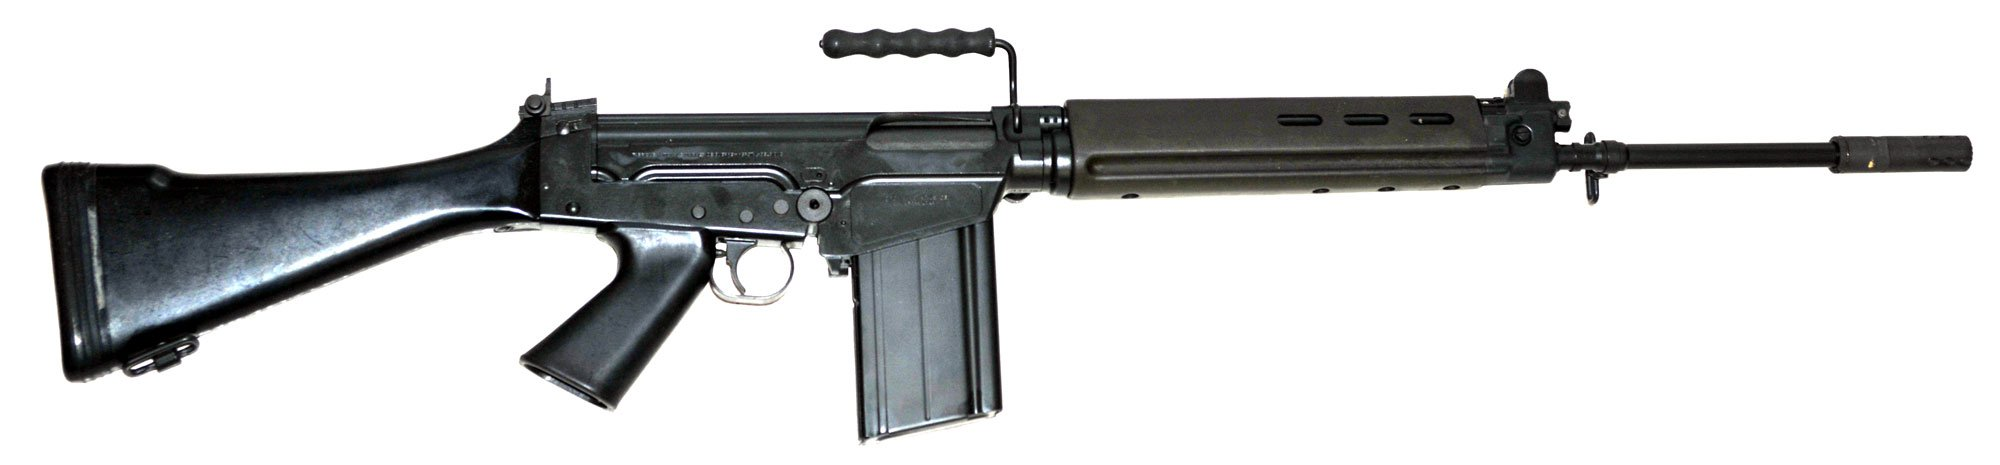 These incredible weapons are made in india 21st century asian arms fn fal altavistaventures Images